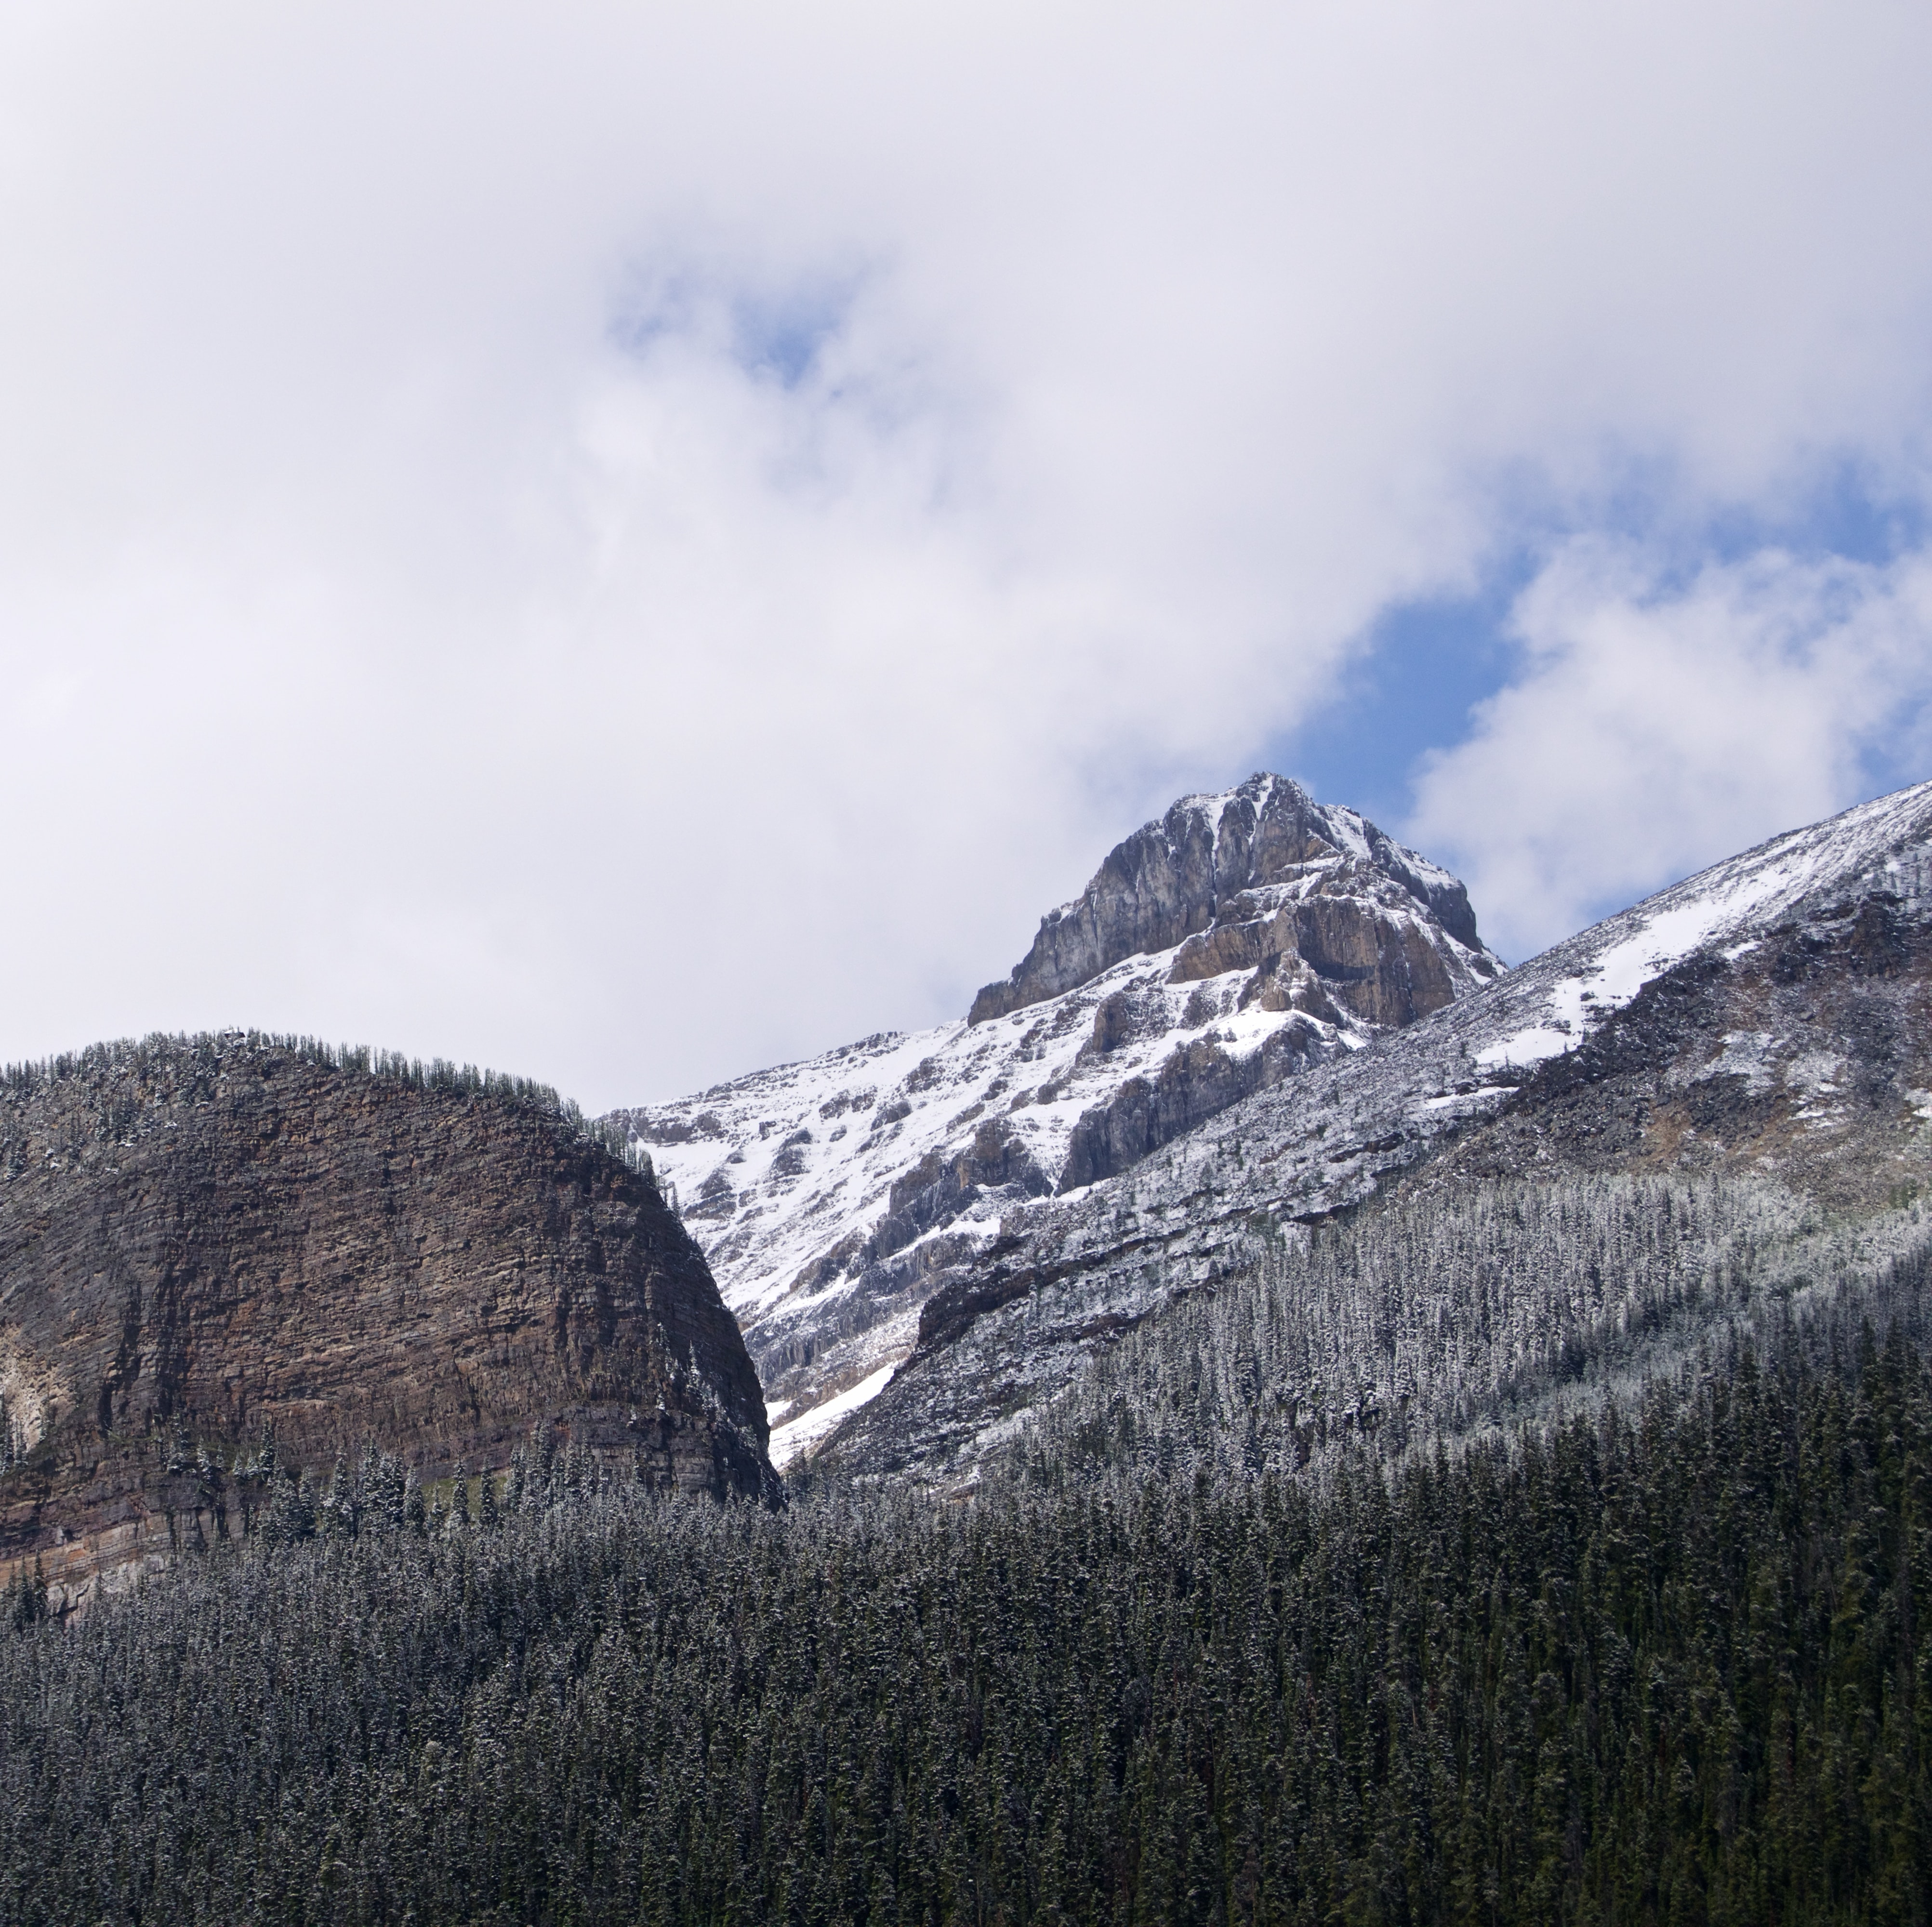 Snowcapped trees on a hill in Canada with a big mountain in the background